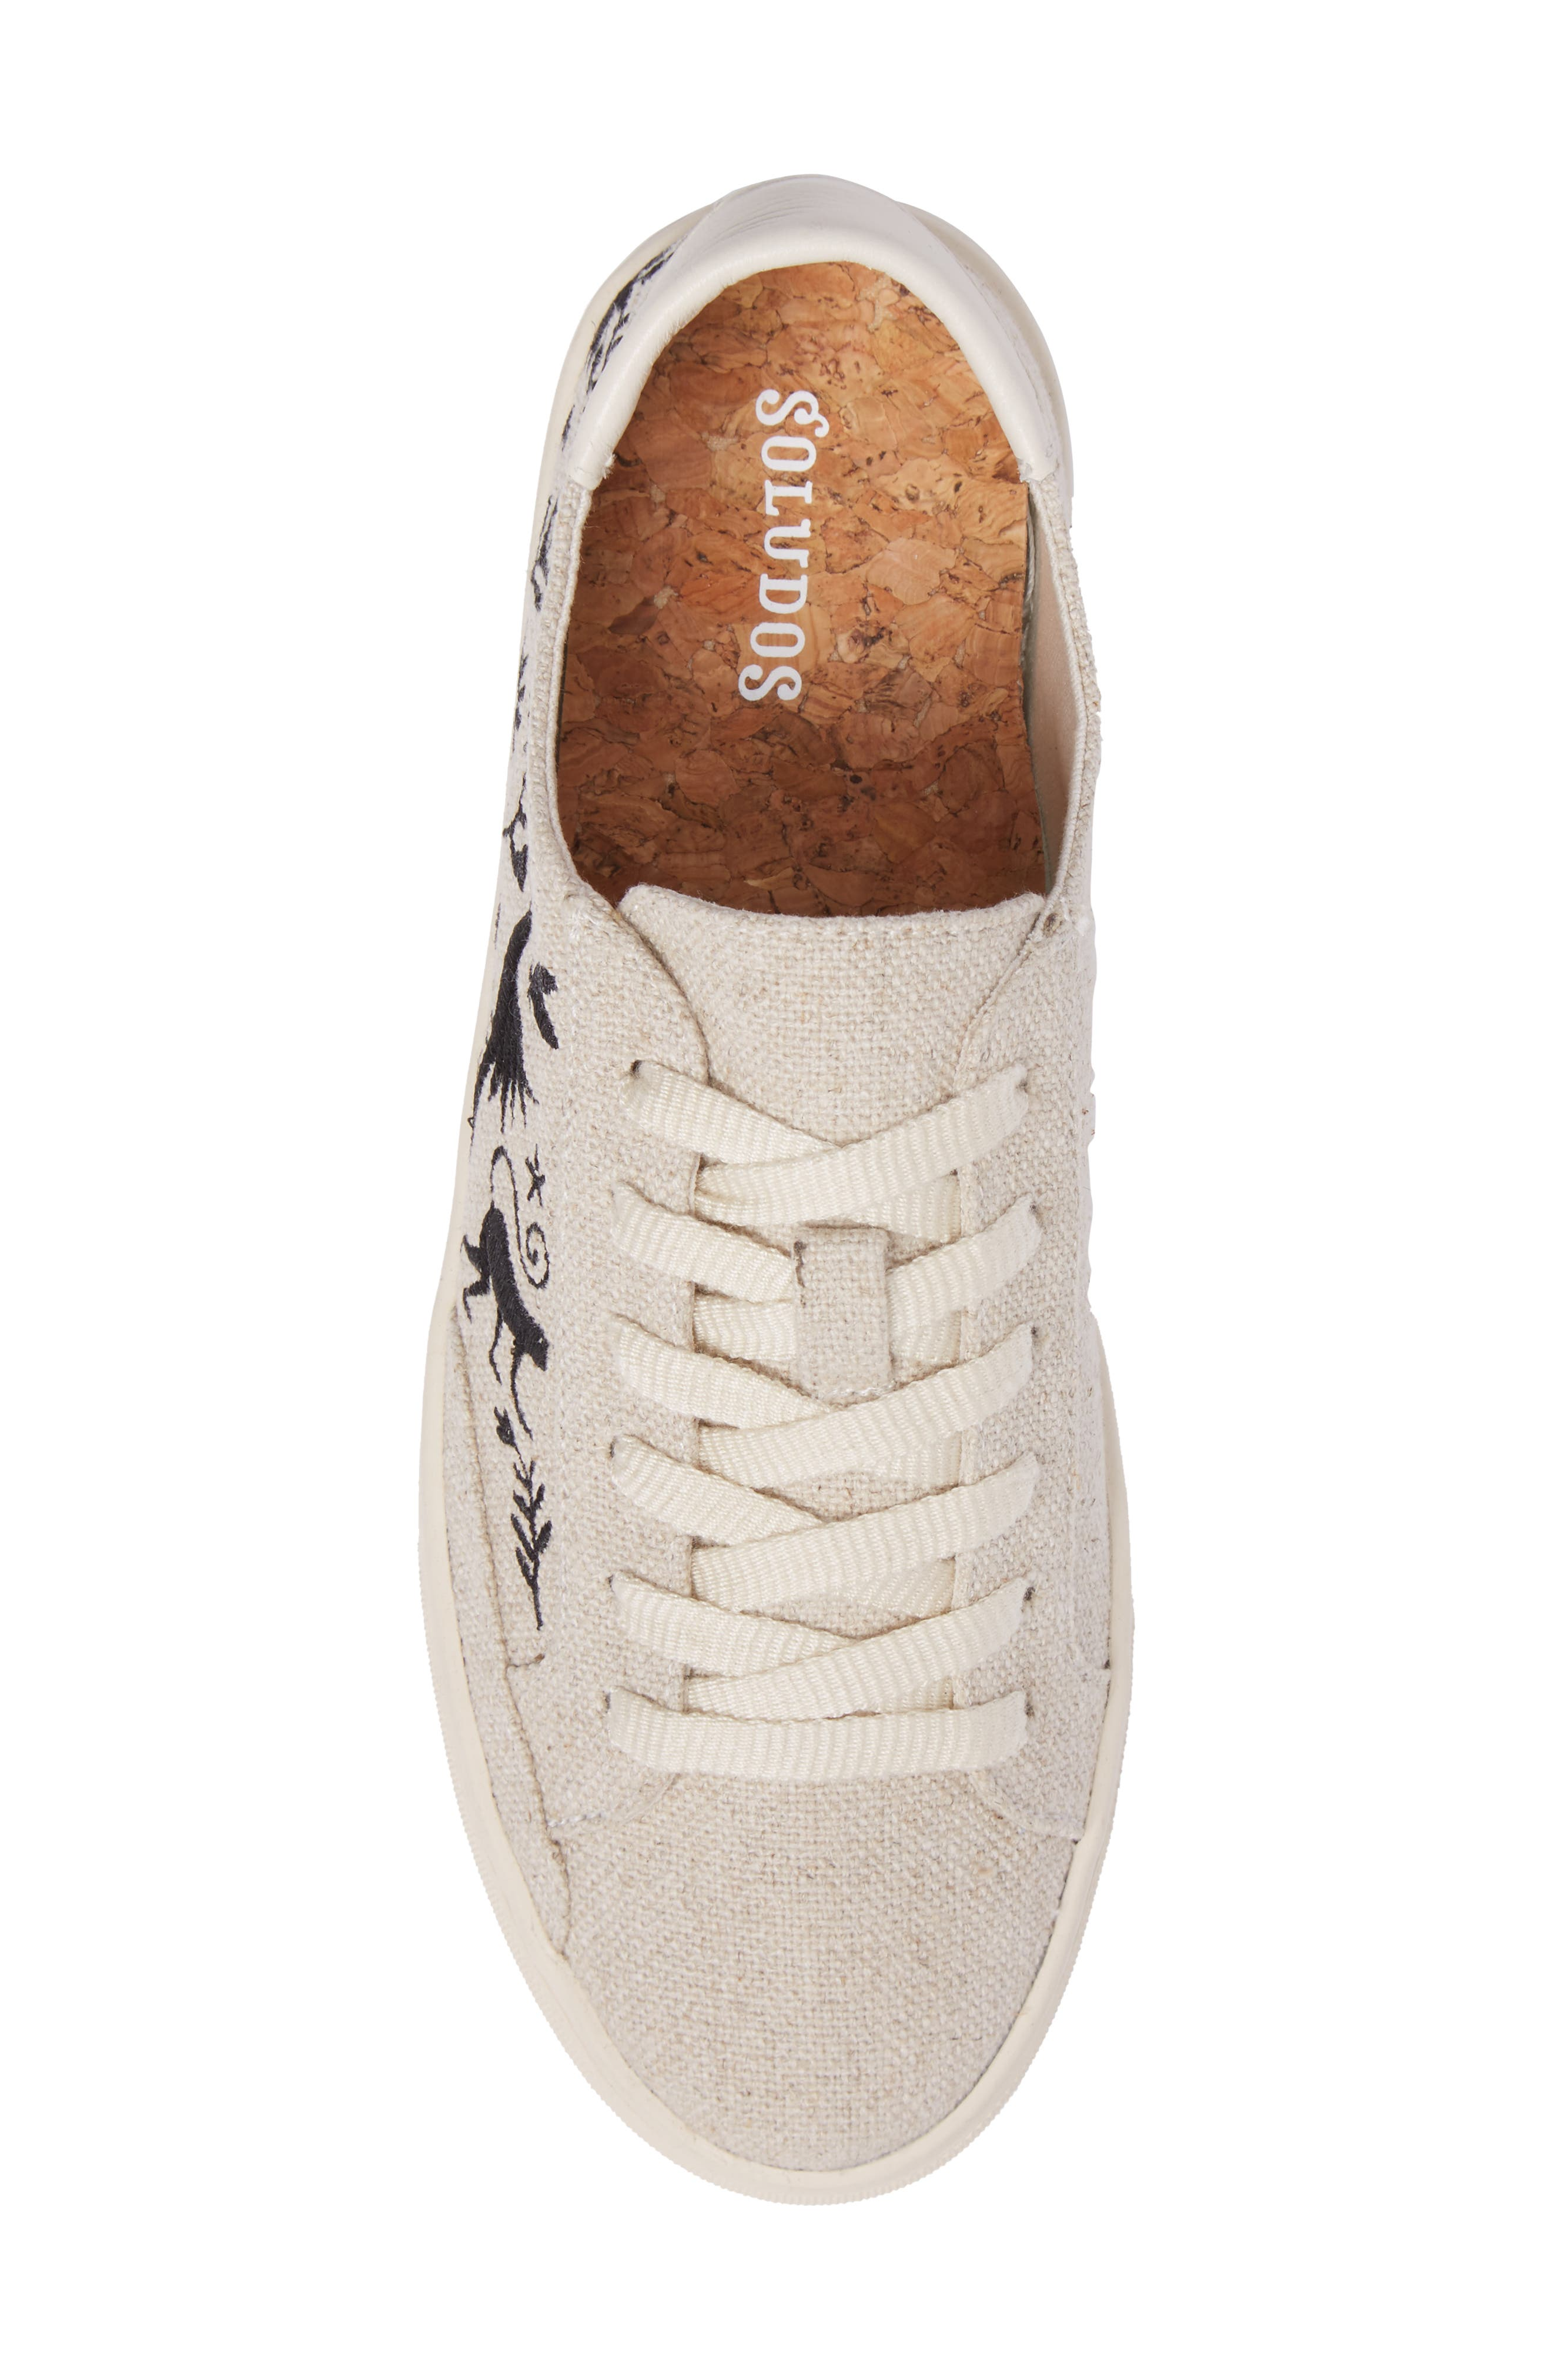 Otomi Sneaker,                             Alternate thumbnail 5, color,                             Sand Black